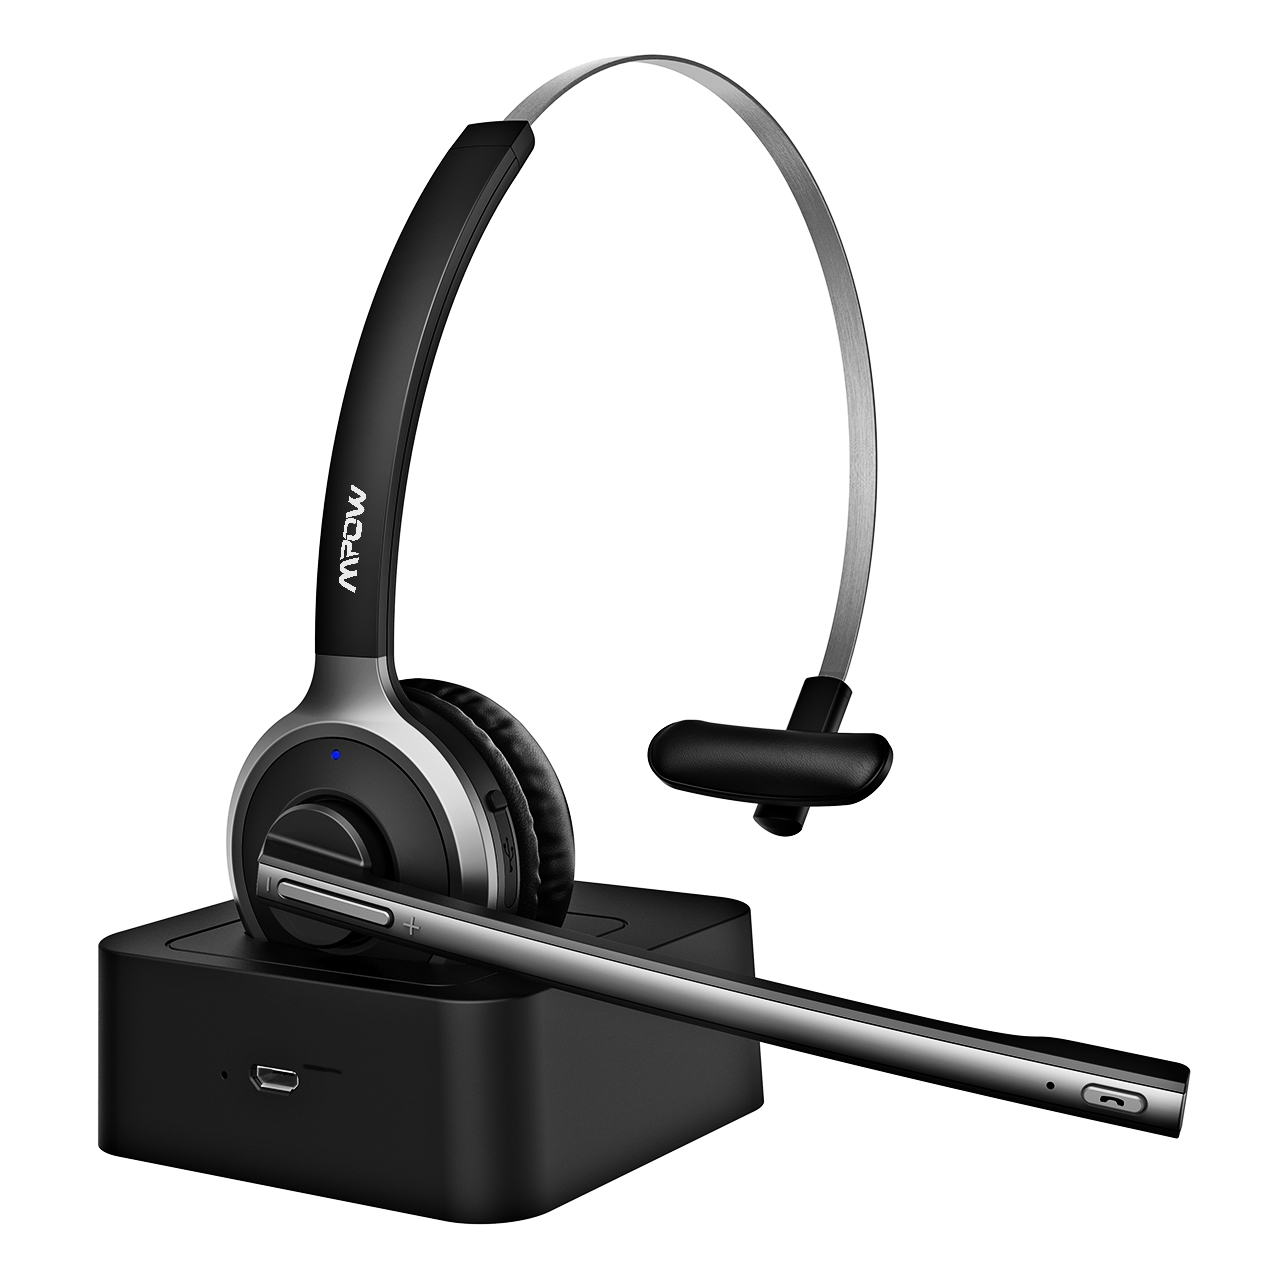 Mpow M5 Pro Bluetooth Headphone Office Headset With Noise Suppressing Mic And Charging Dock For Pc Sale Price Reviews Gearbest